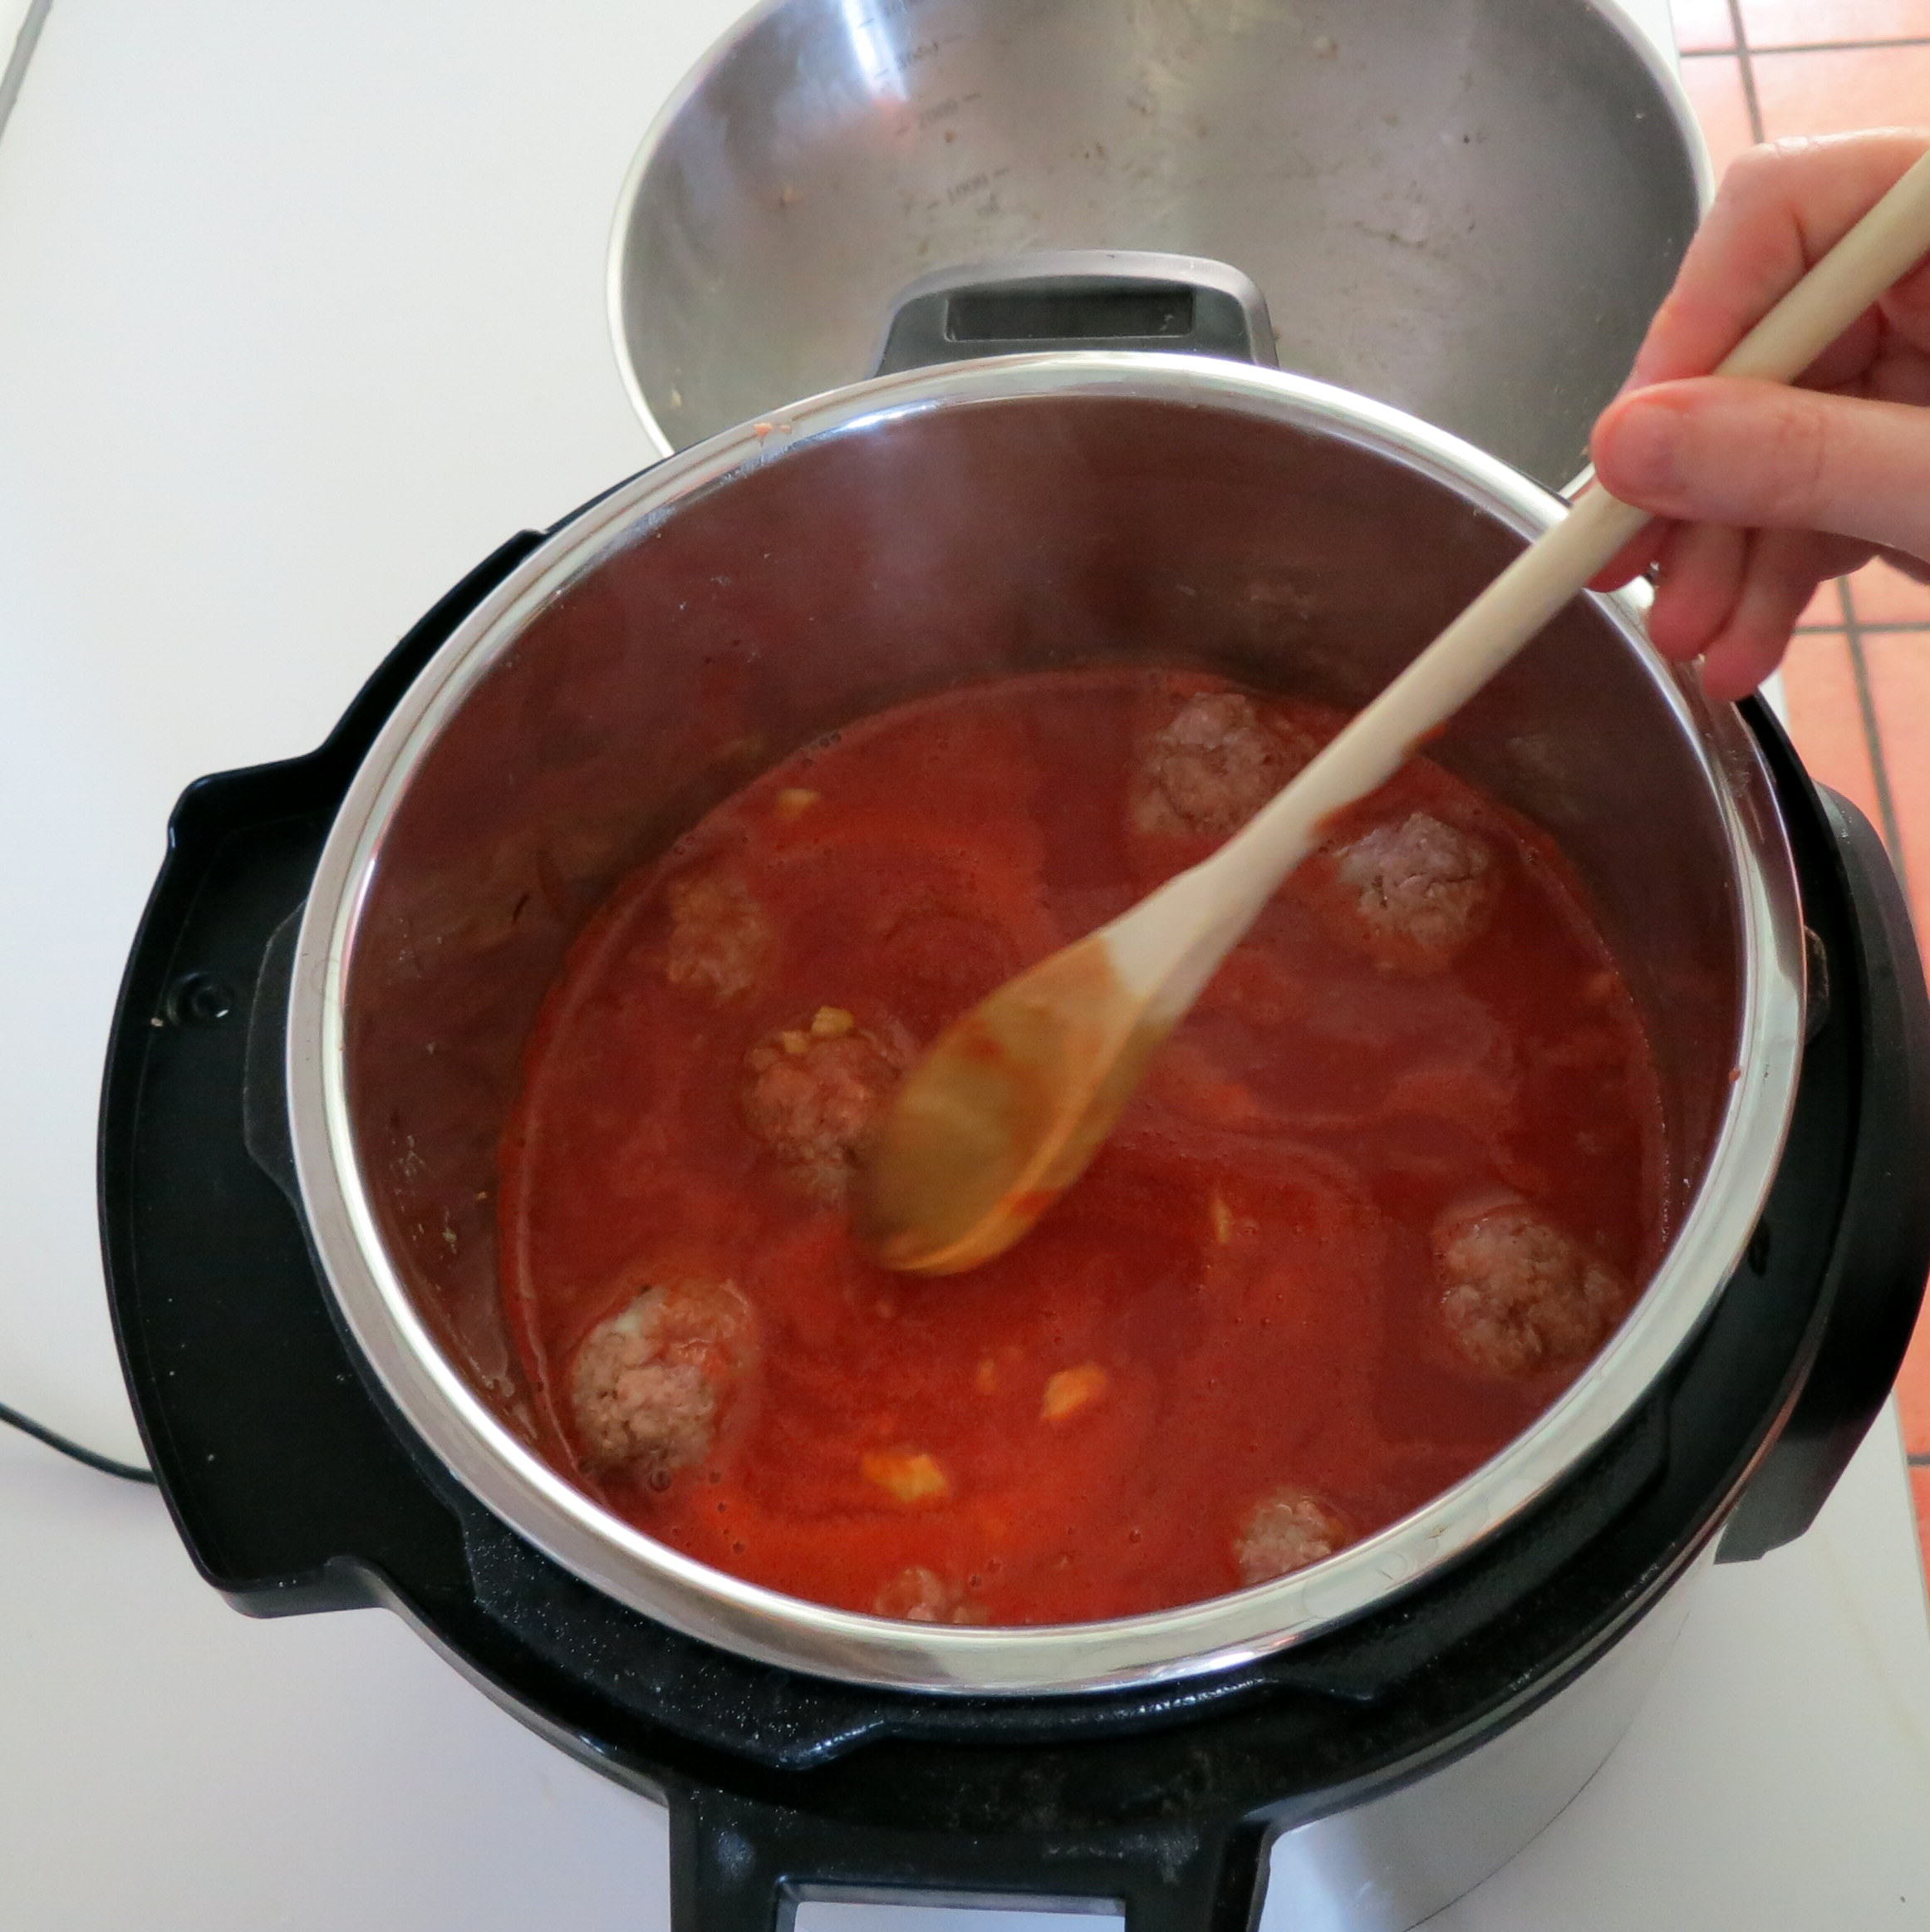 Flick some hot tomato sauce onto the uncovered meatballs